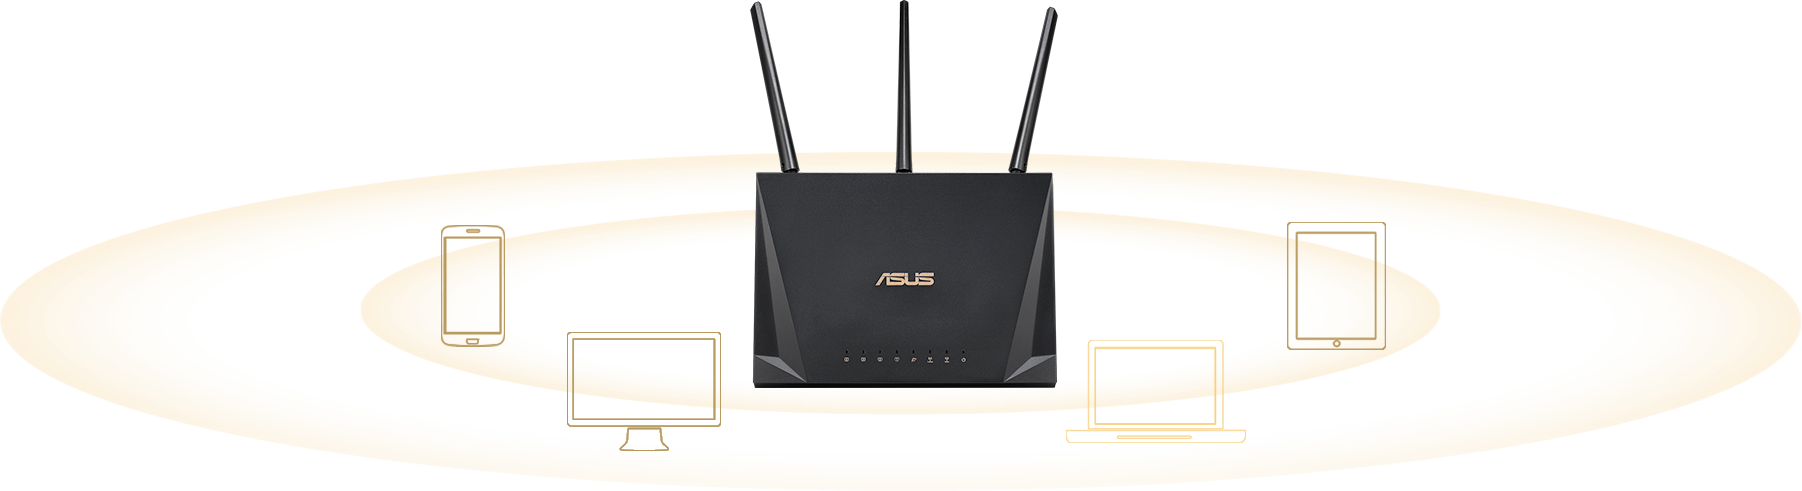 ASUS RT-AC2400 comes with Multi-user MIMO, allowing RT-AC2400 to serve multi-device at a time